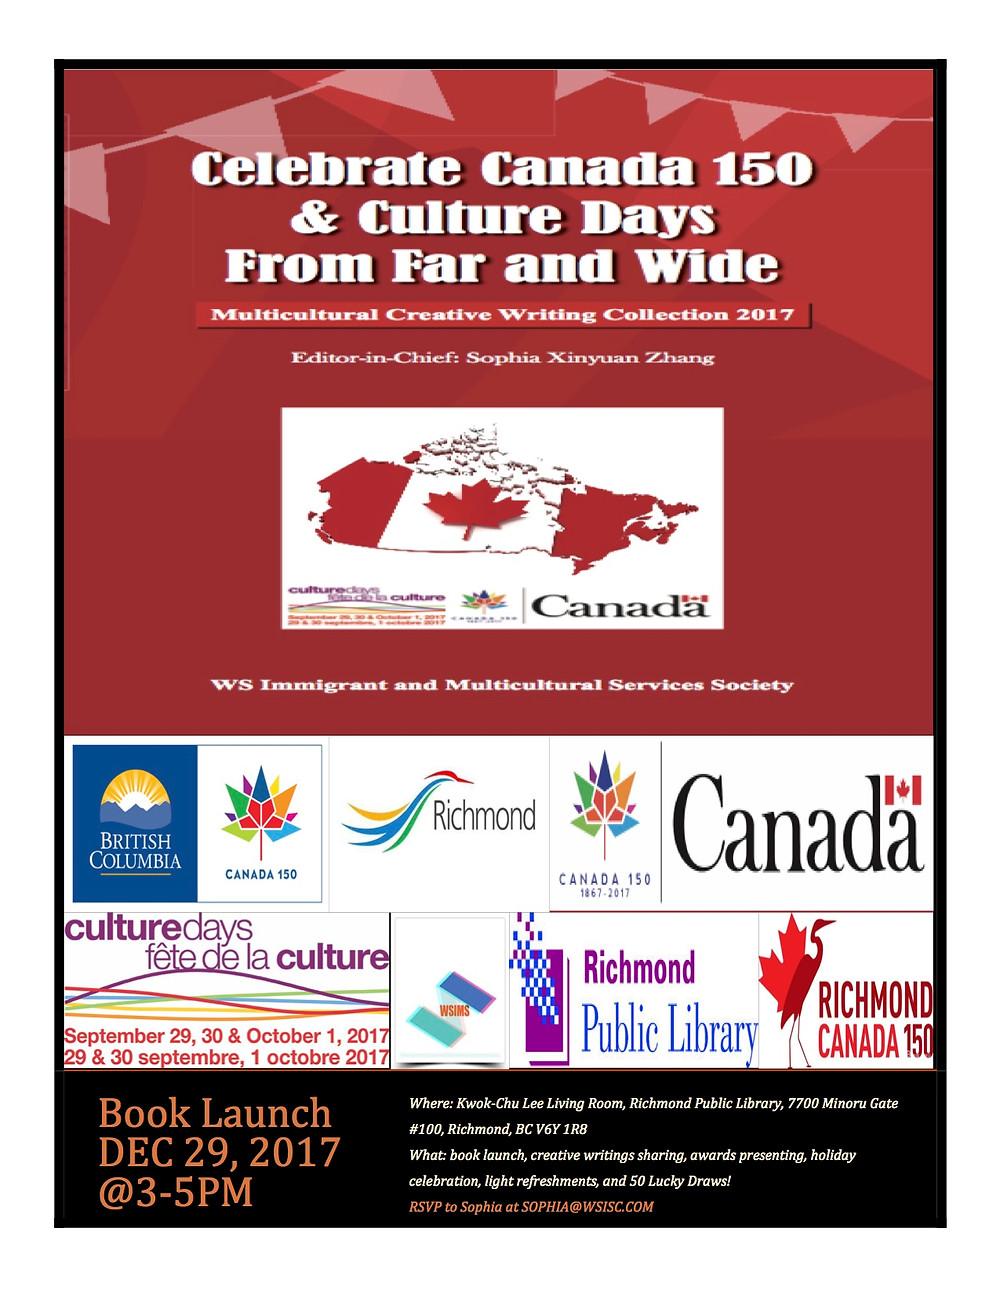 Celebration Canada 150 & Culture Days-Multicultural Creative Writing Collection 2017 Book Launch Poster